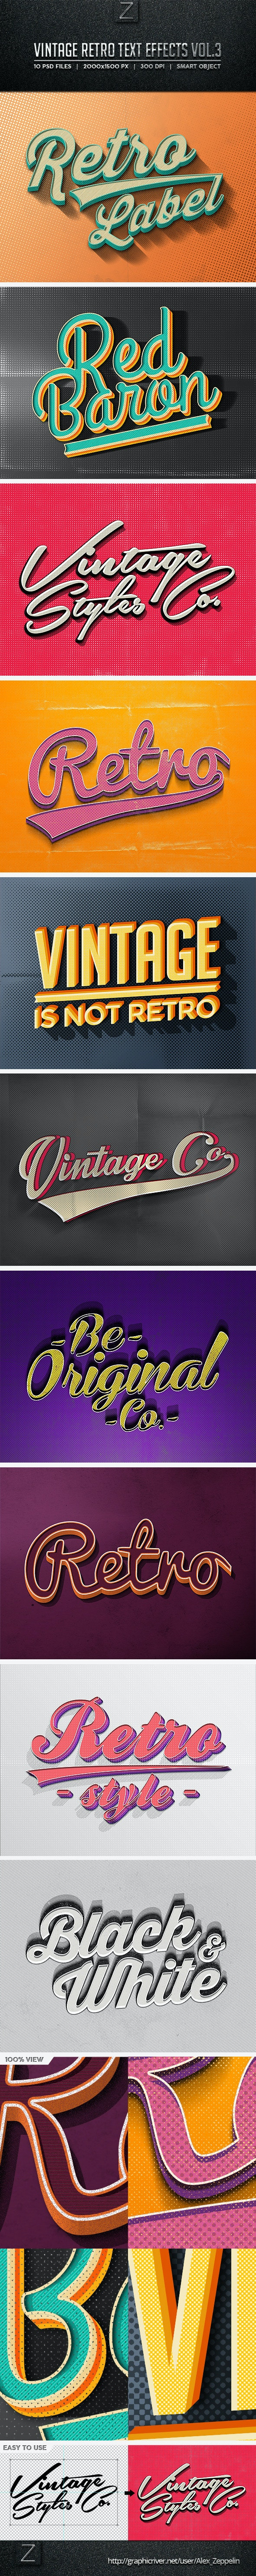 Vintage Text Effects Vol.3 - Text Effects Styles